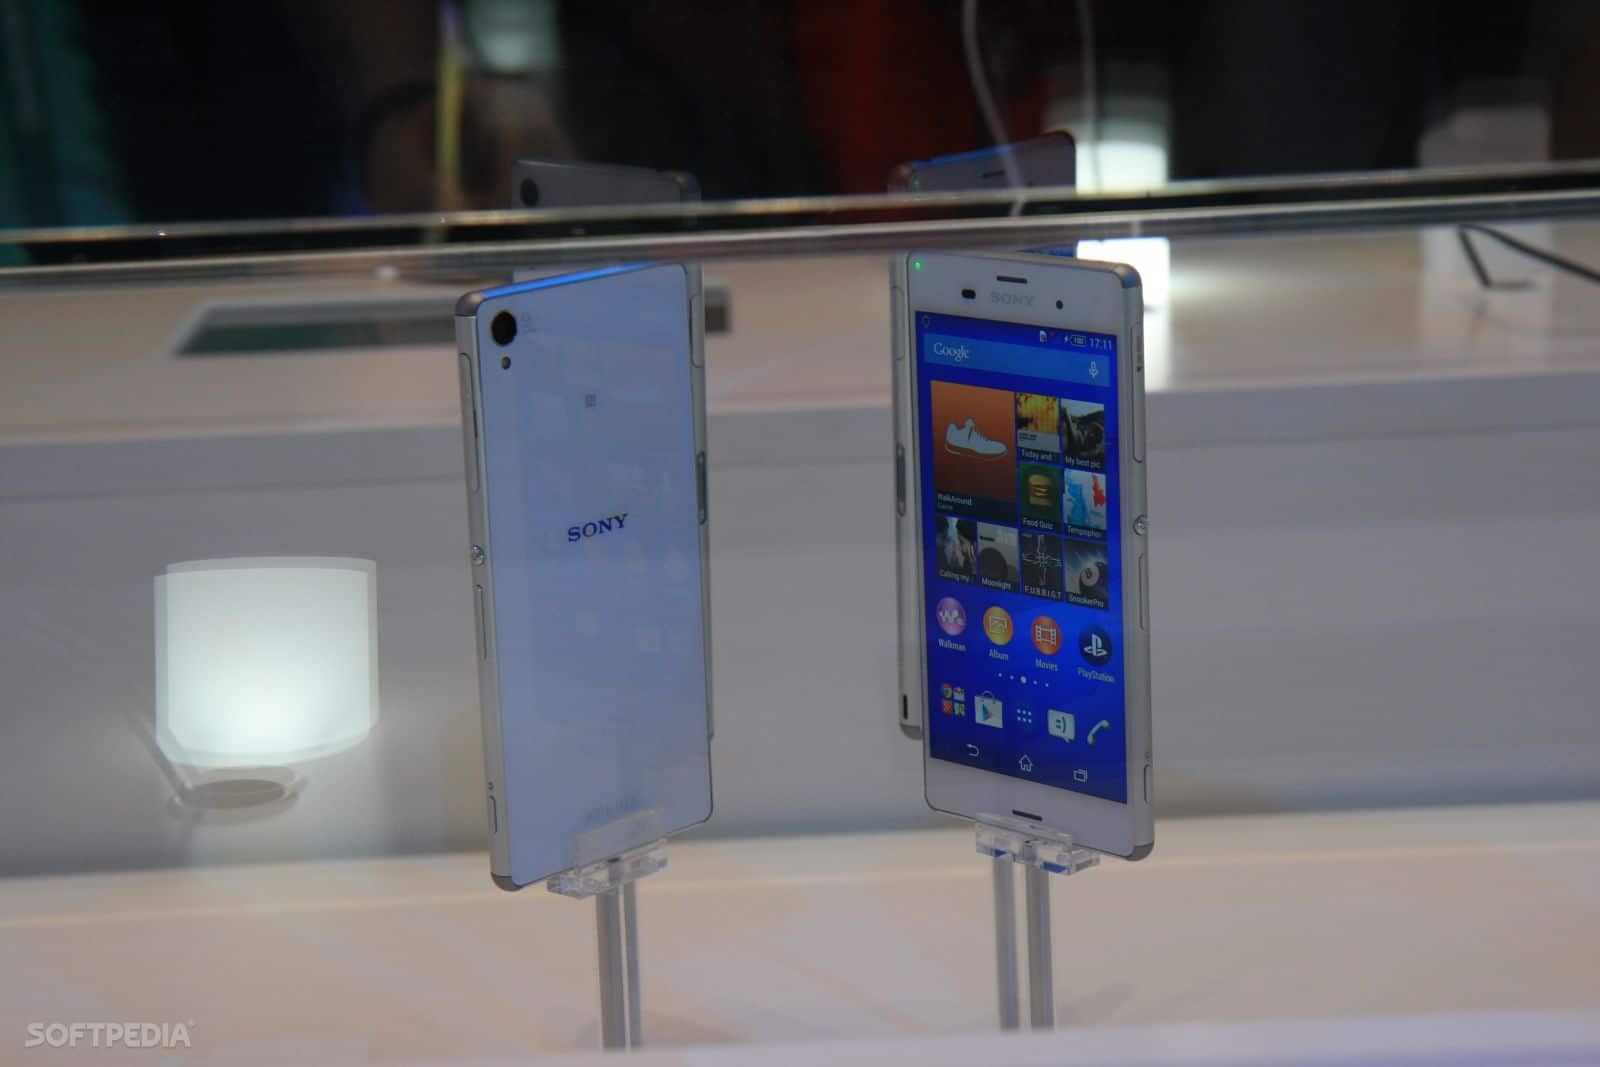 IFA-2014-Sony-Xperia-Z3-and-Xperia-Z3-Compact-Hands-On-457835-3